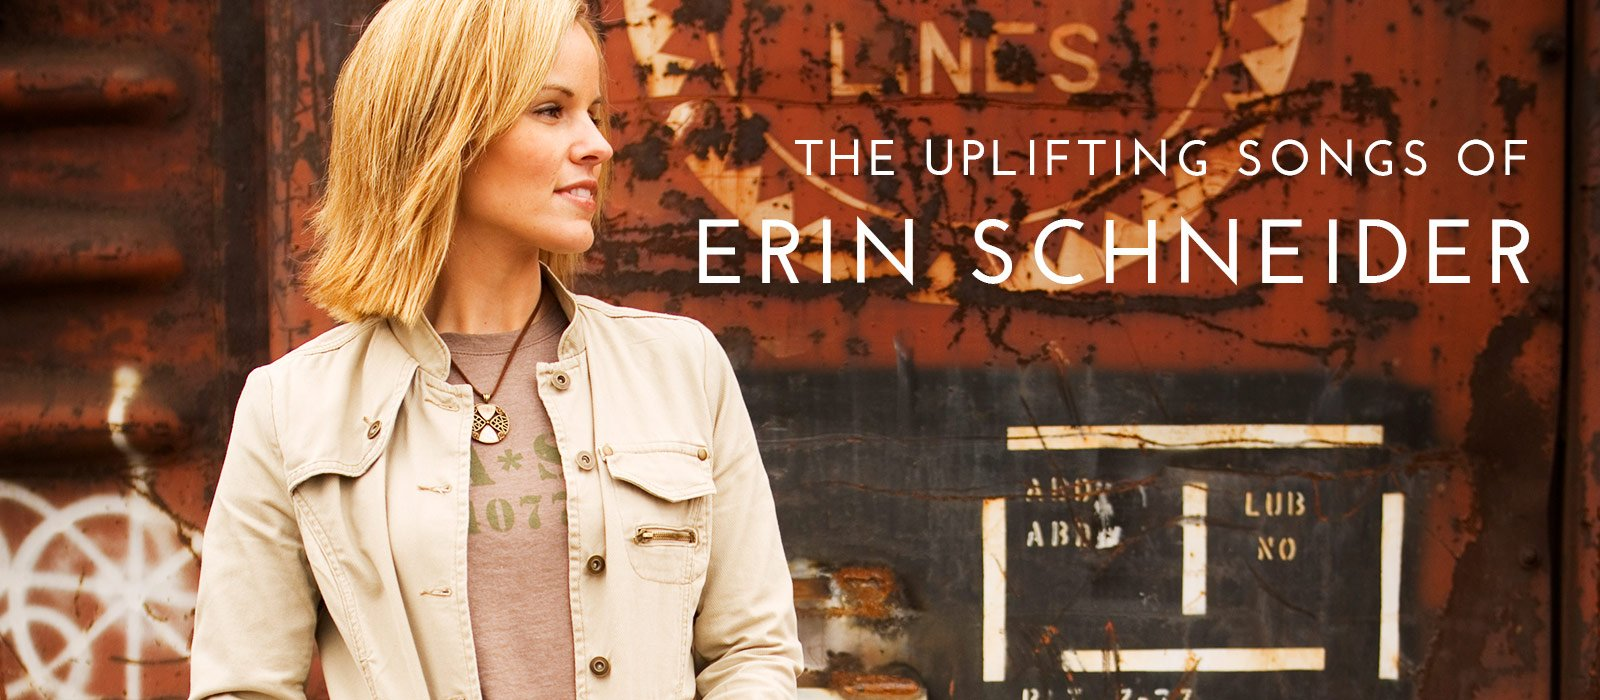 The uplifting songs of Erin Schneider